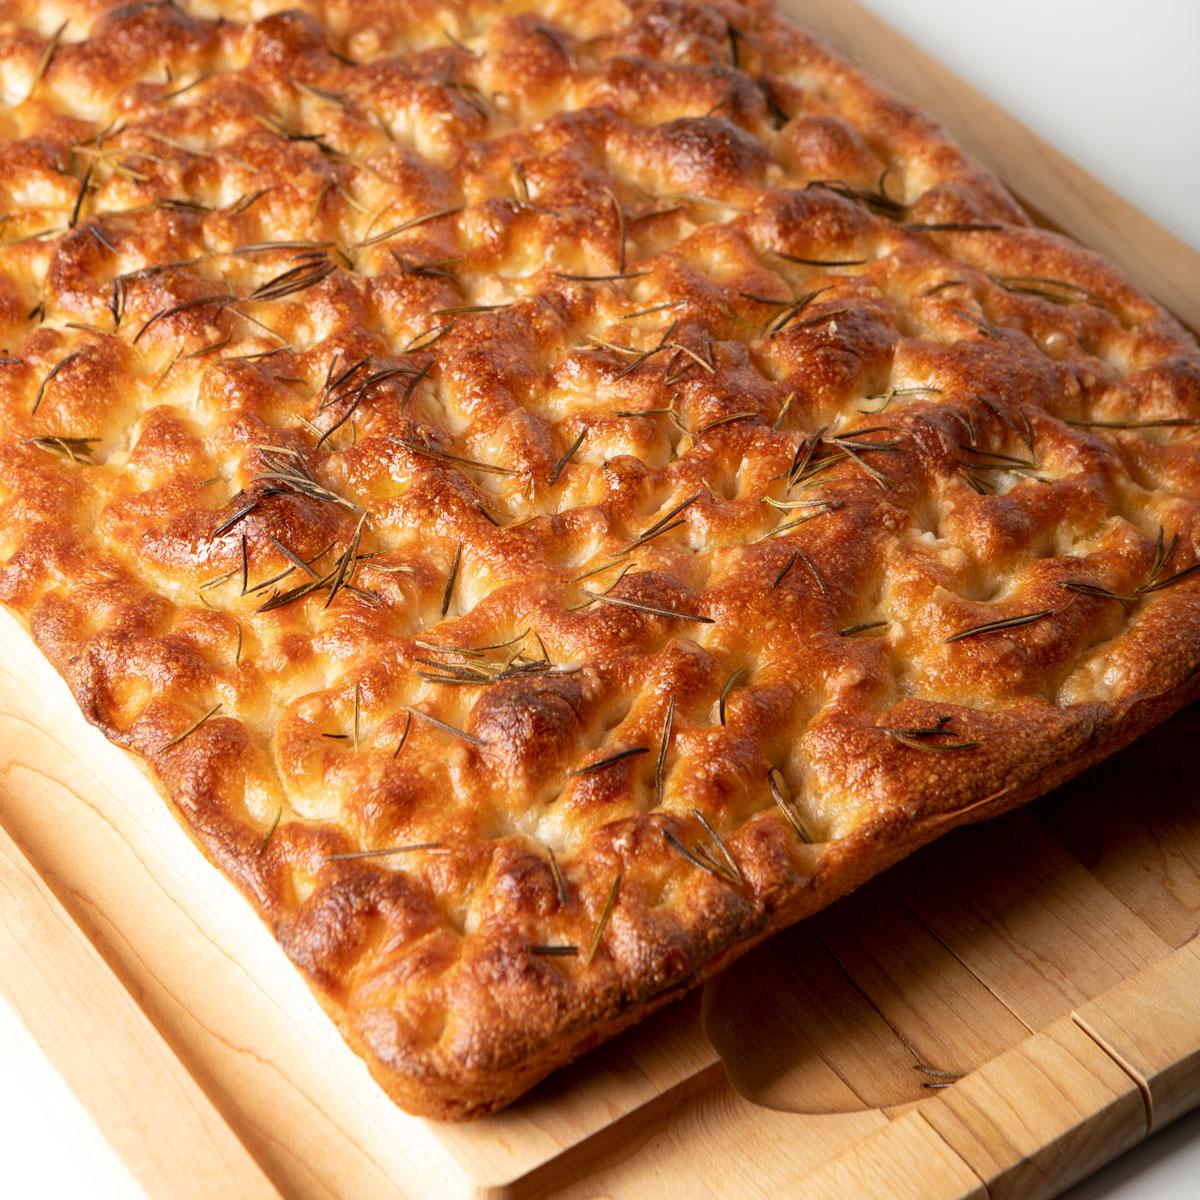 focaccia bread on a wooden cutting board